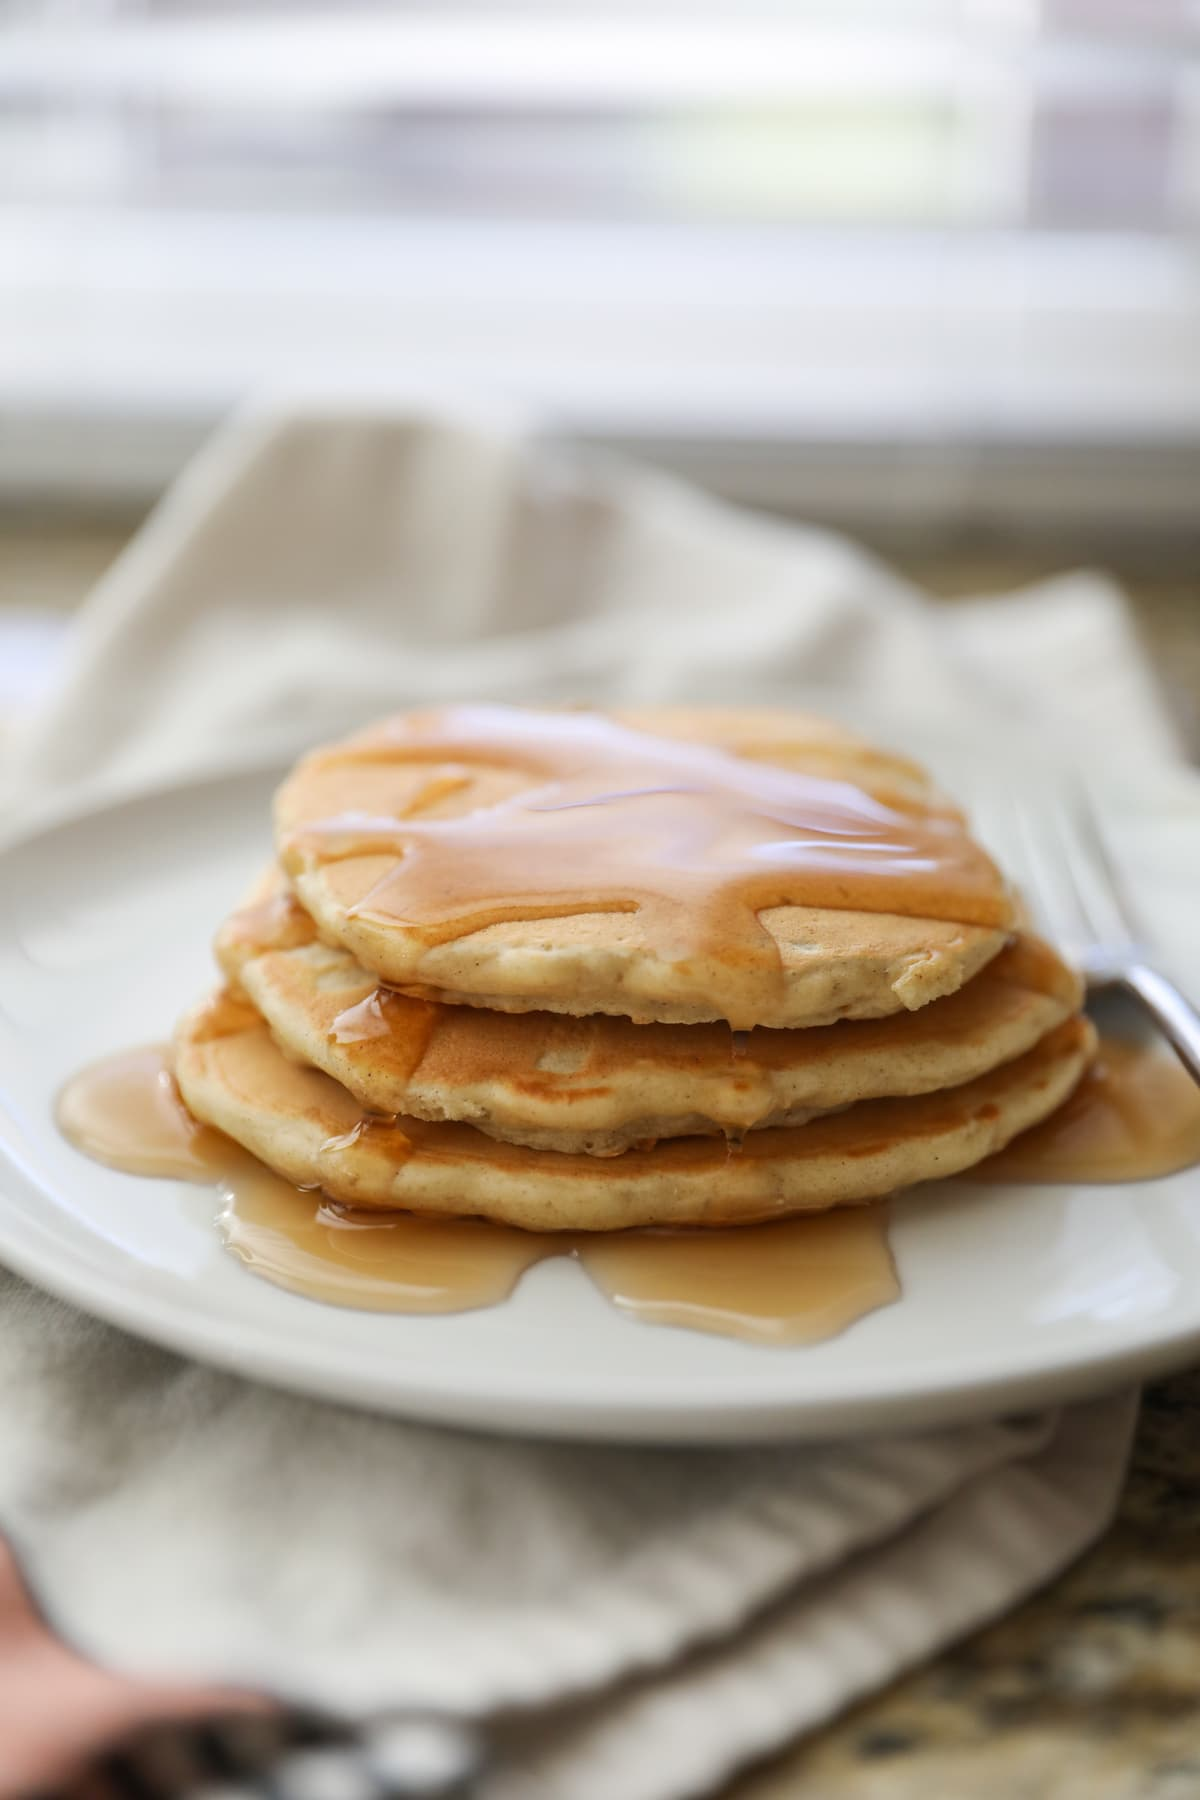 syrup on oatmeal pancakes